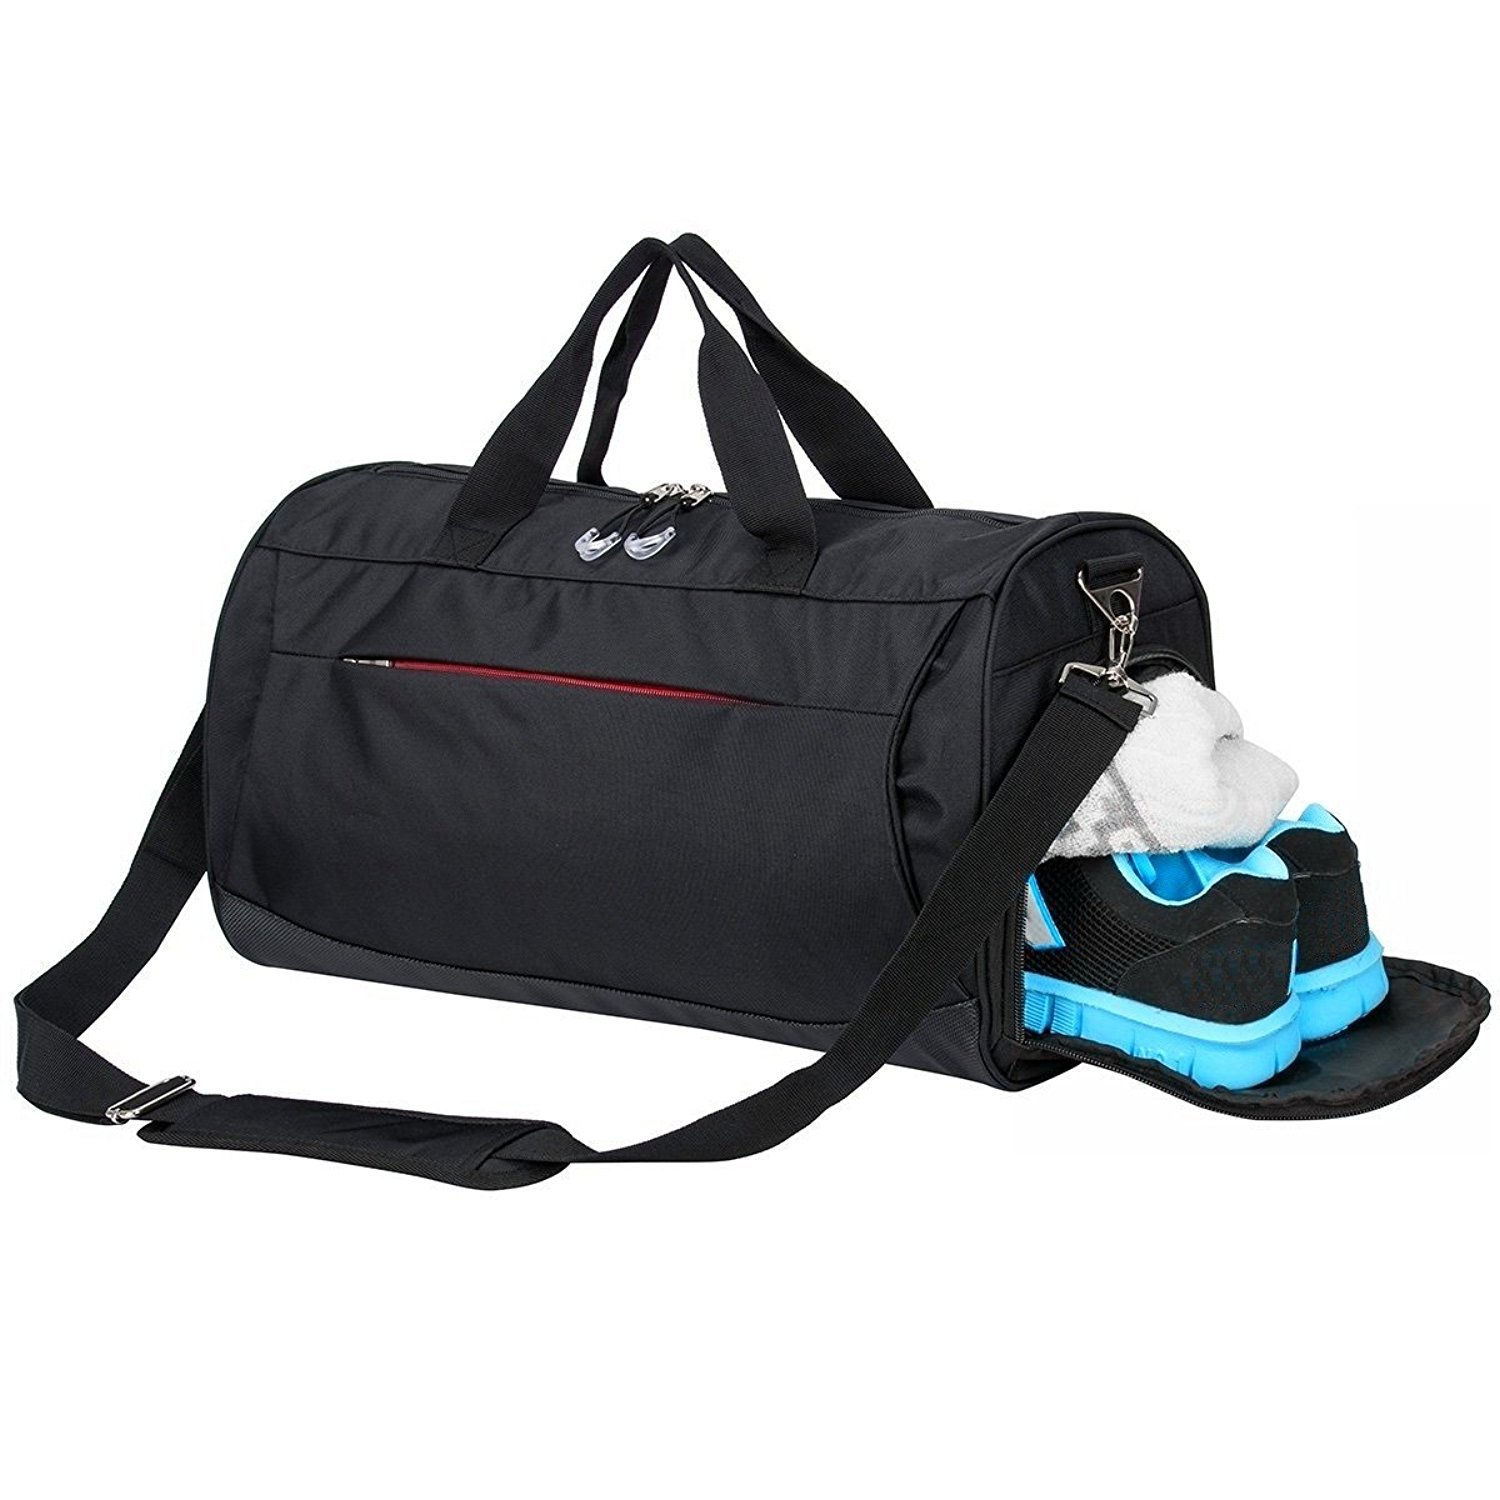 Sports Gym Bag with Shoes Compartment 07e7448ed8d35